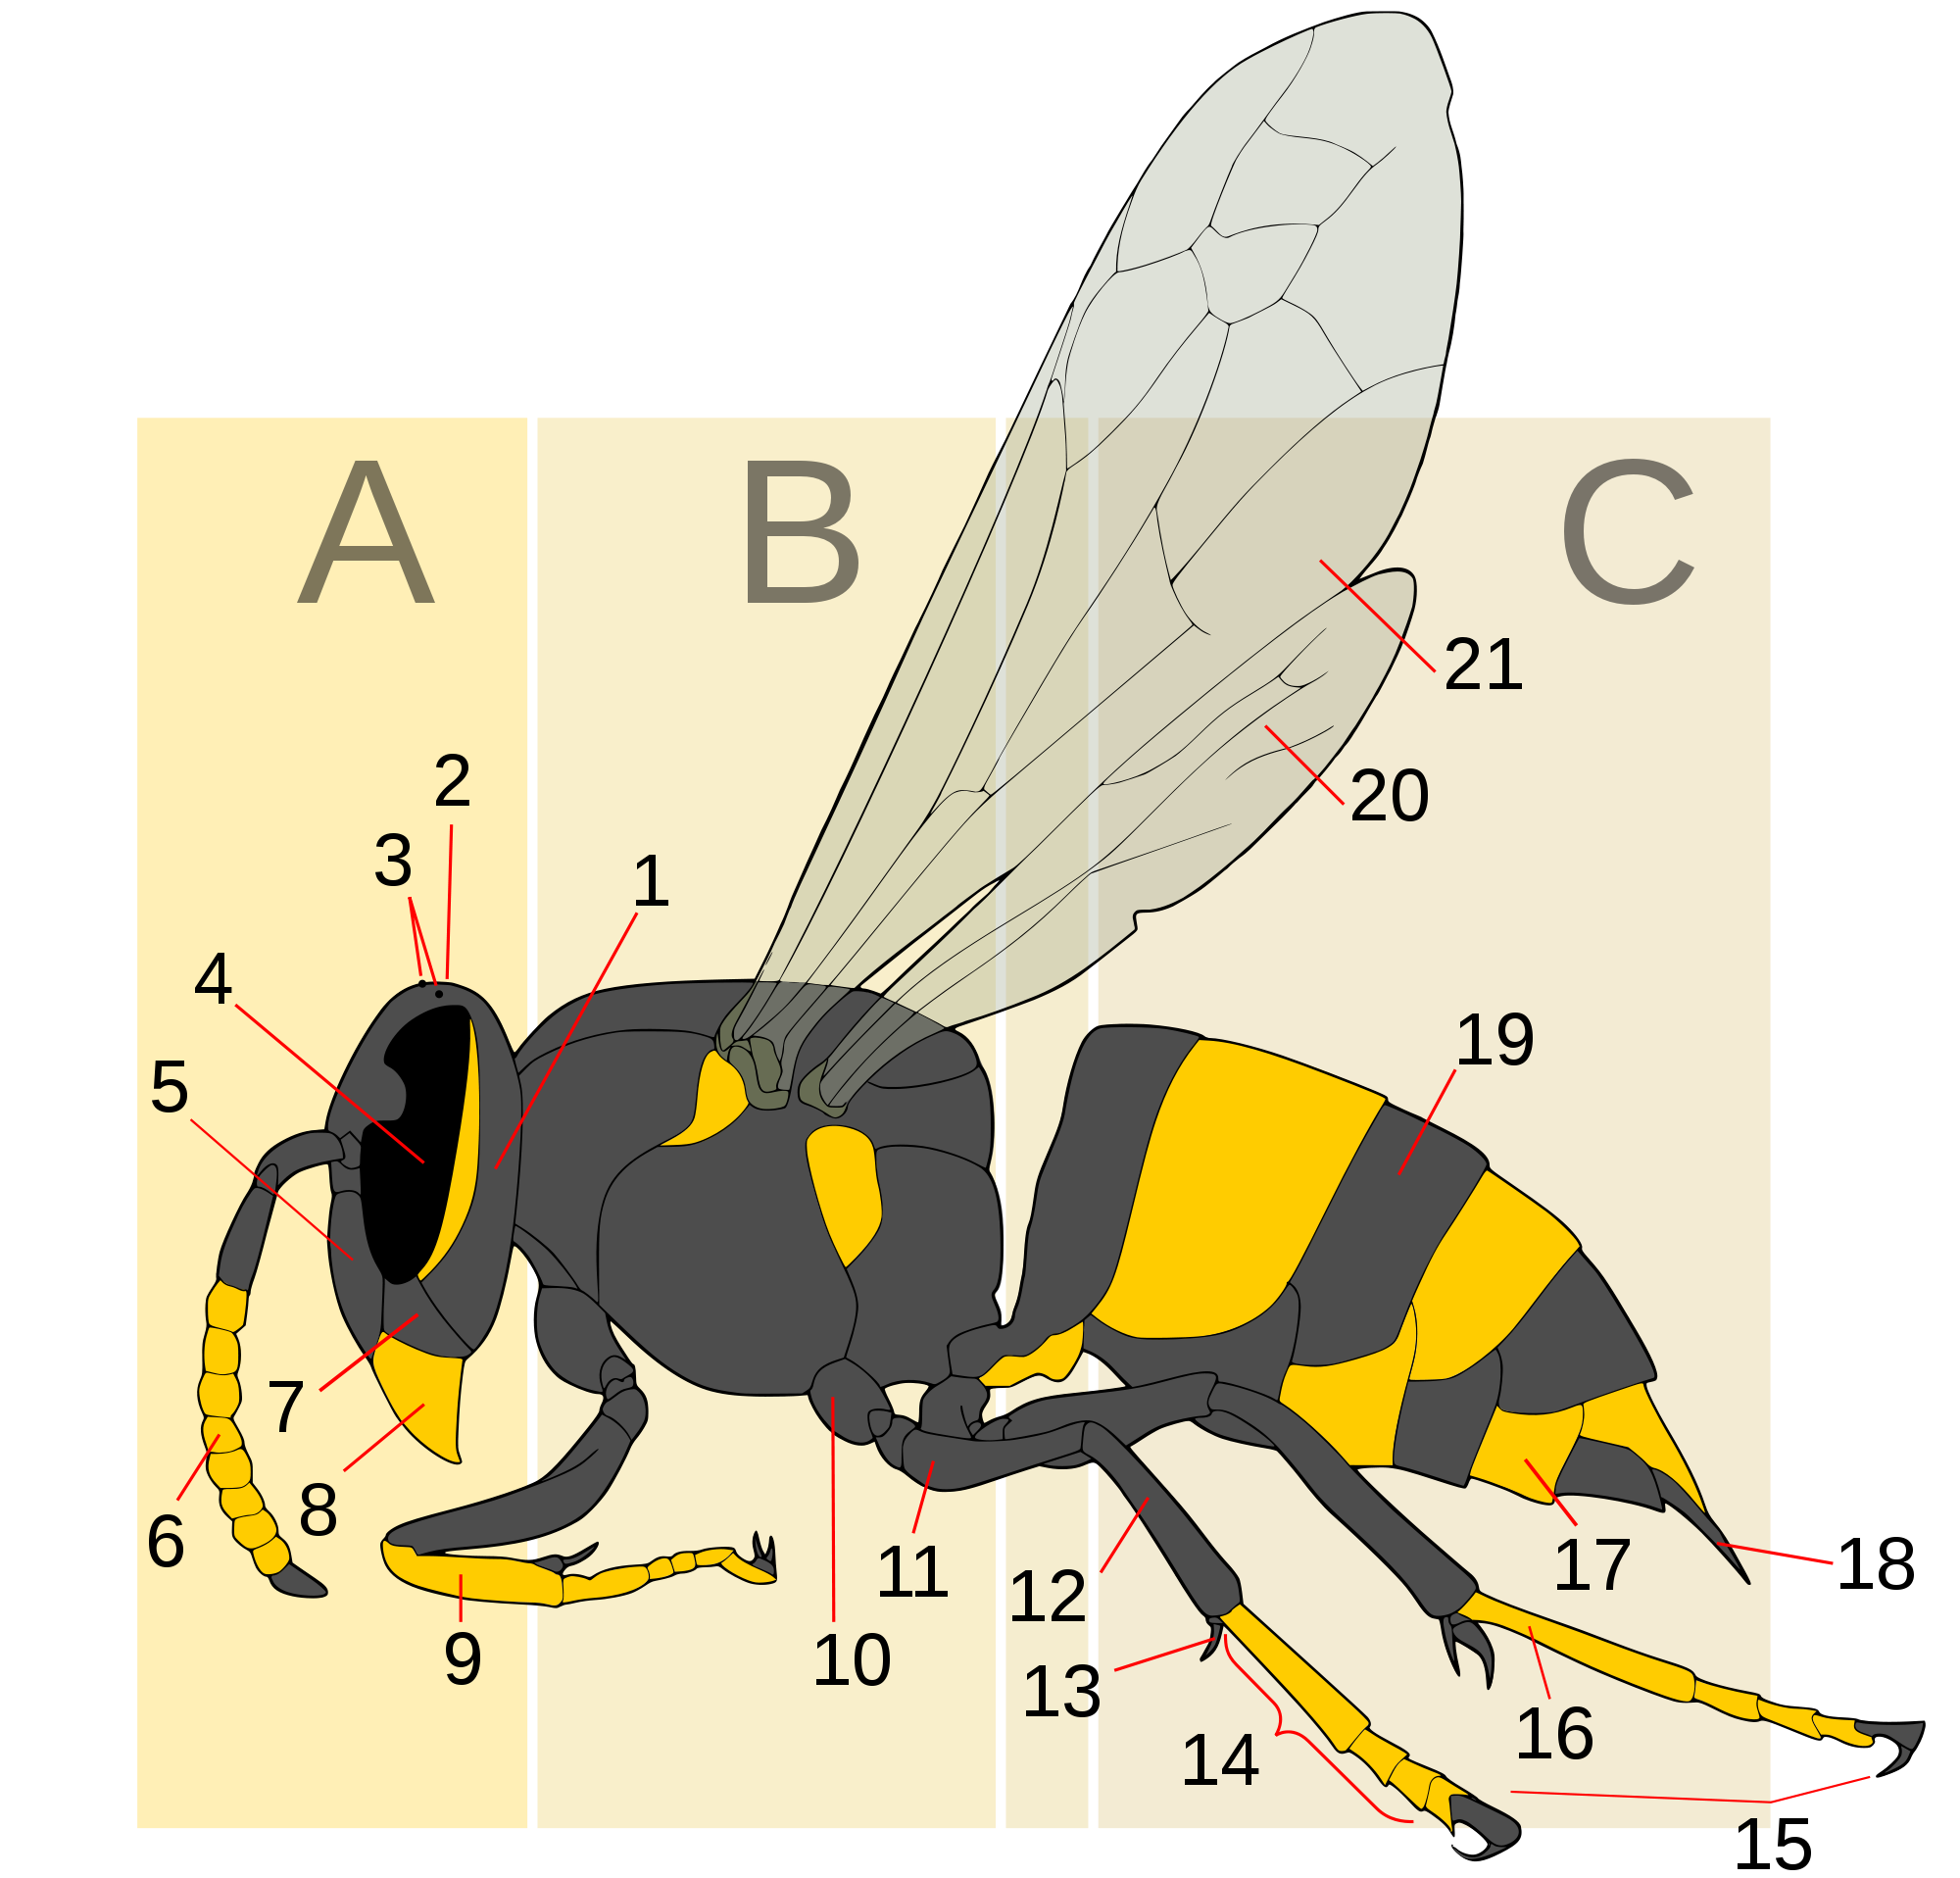 Wasp vector svg. File morphology generic text